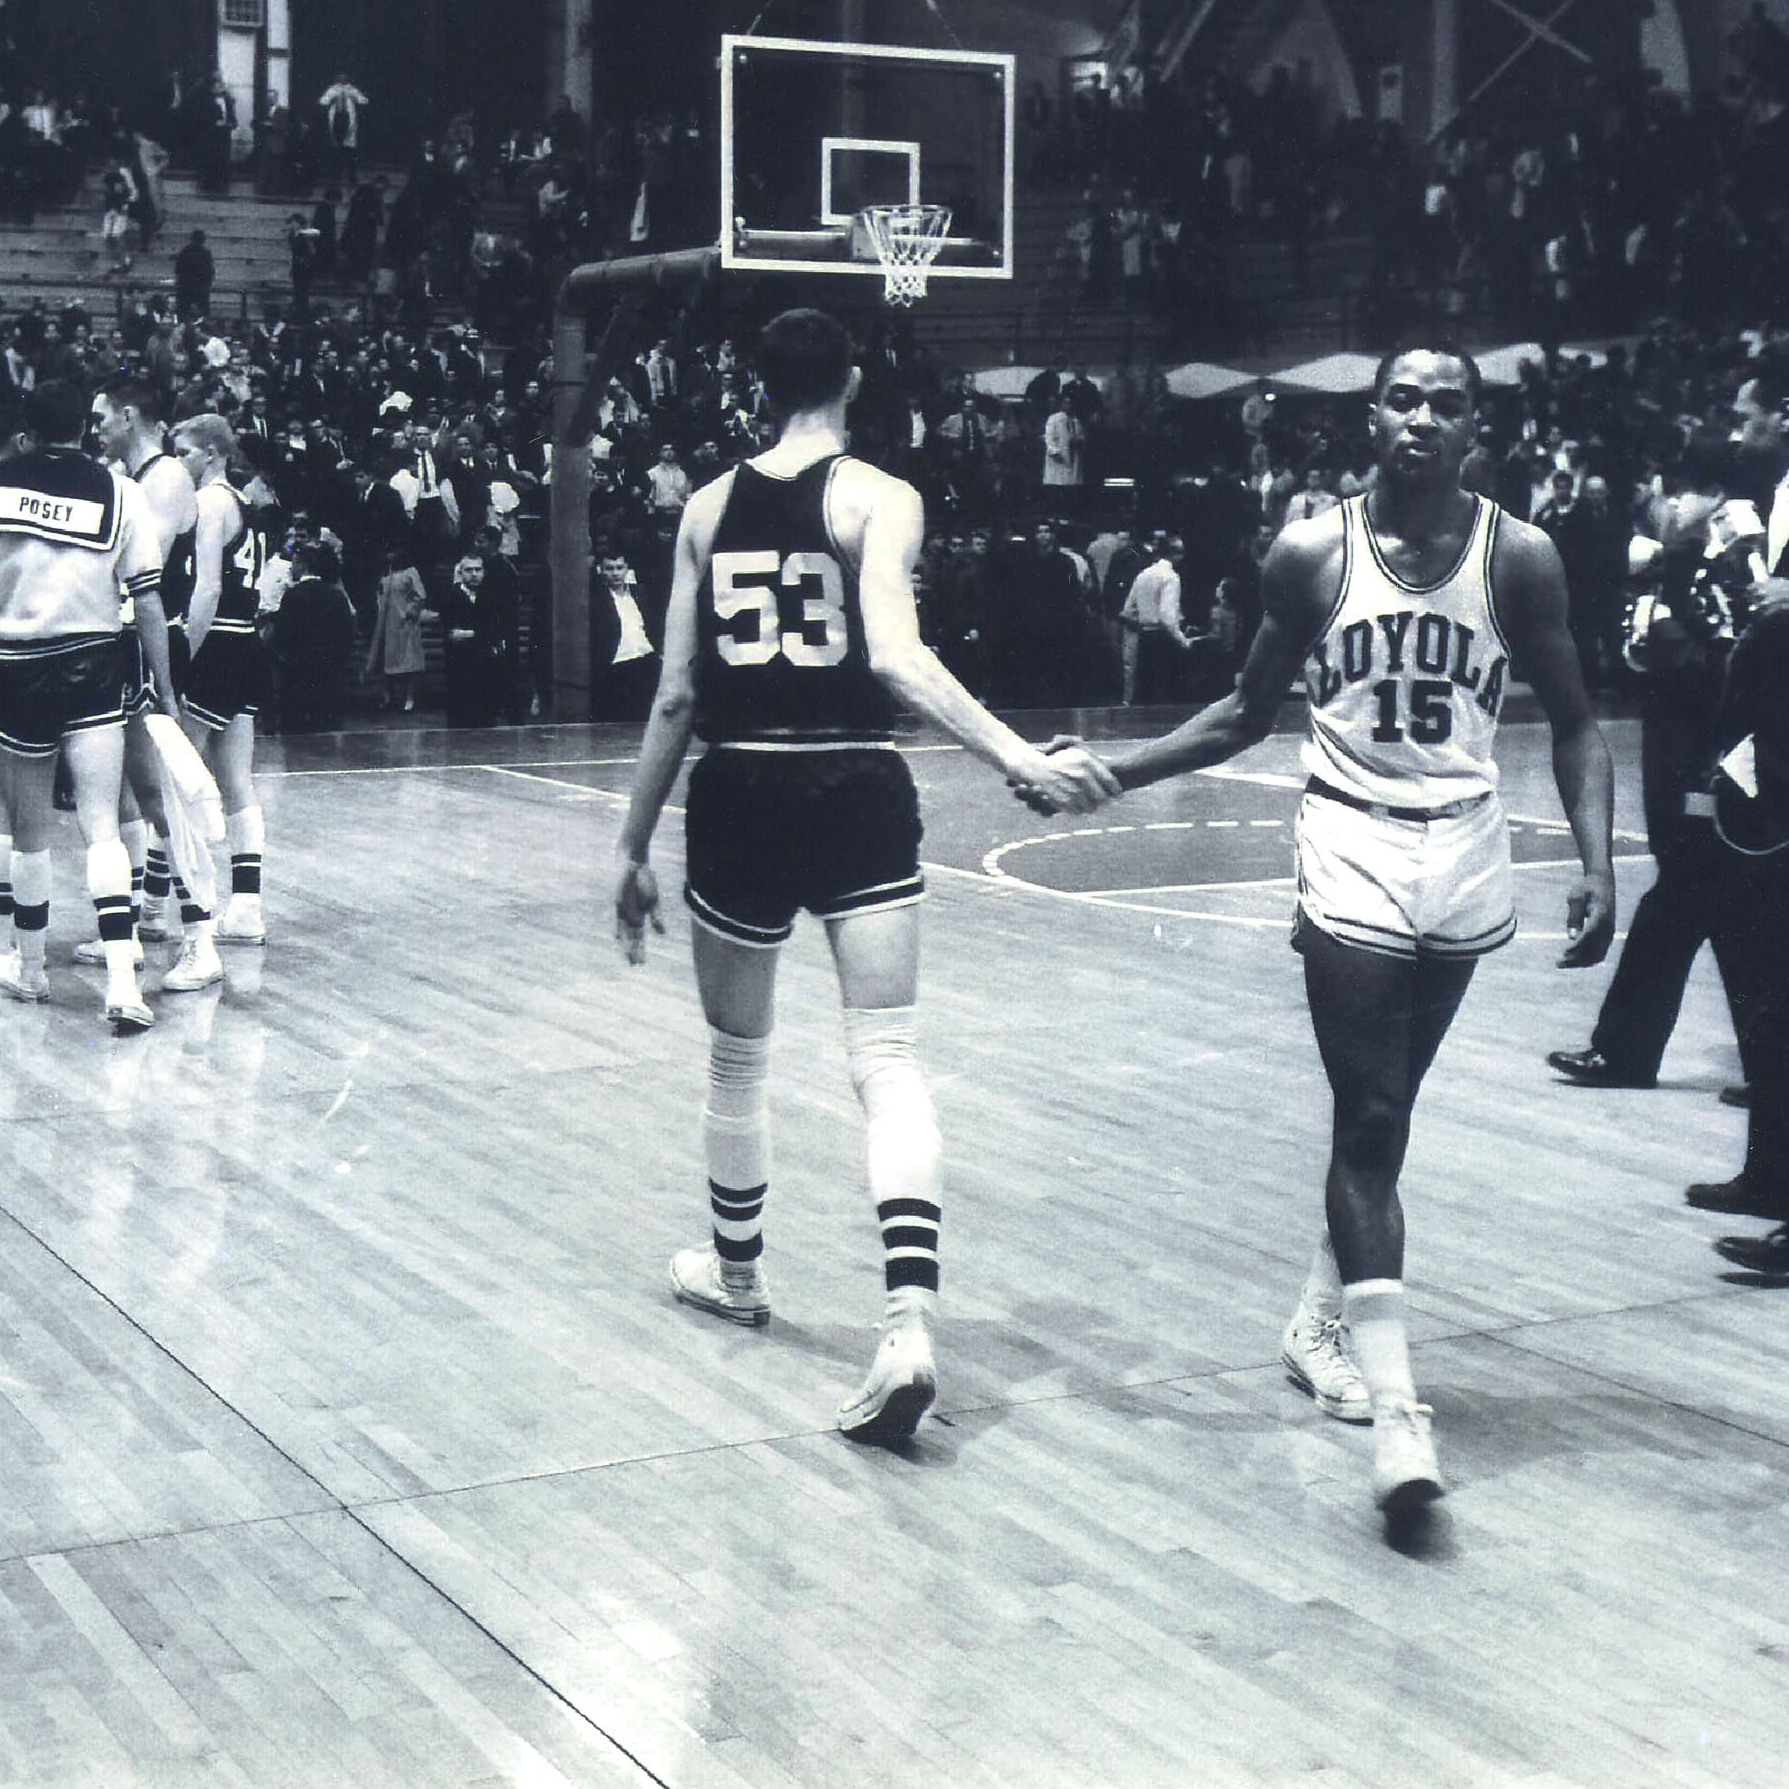 Mississippi State's Stan Brinker (left) and Loyola University's Jerry Harkness shake hands before the NCAA Mideast regional semifinal college basketball game in East Lansing, Mich.